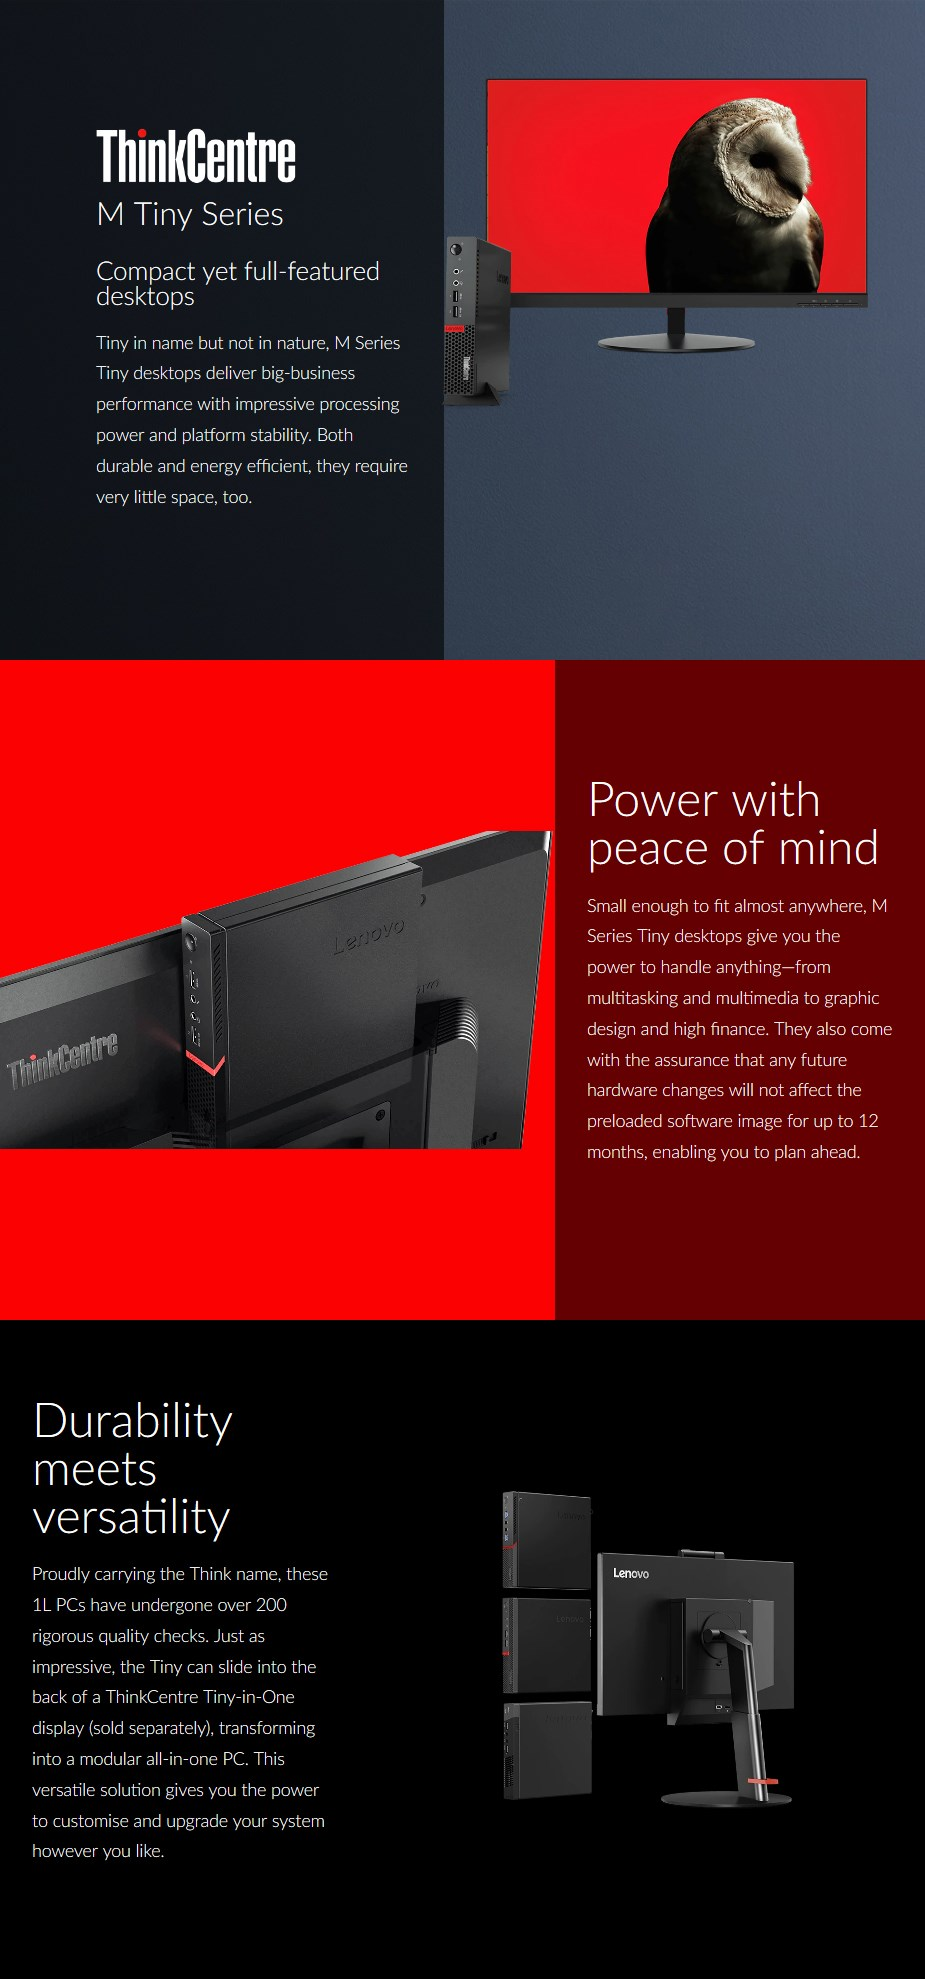 Lenovo ThinkCentre M920 Tiny PC i7-9700T 8GB 256GB WiFi+BT Win10 Pro - Desktop Overview 1